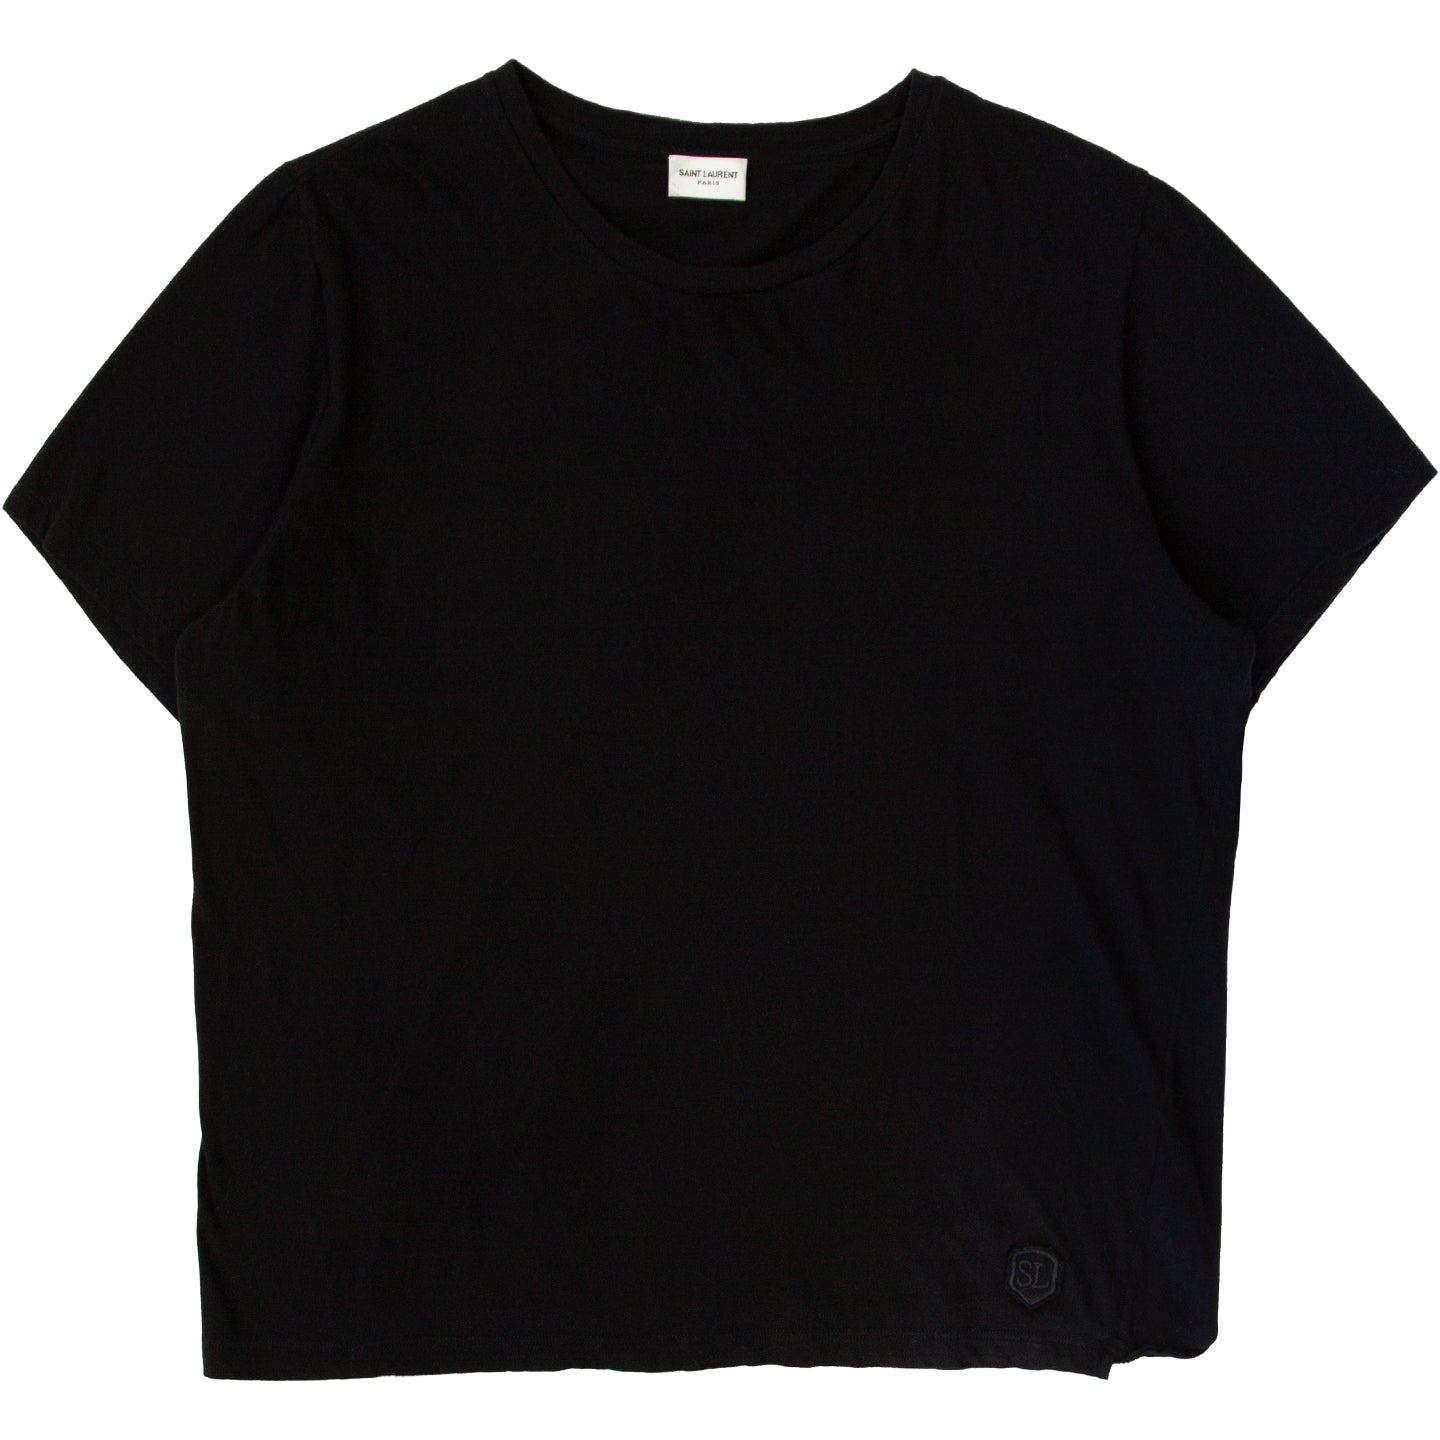 SAINT LAURENT EMBROIDERED LOGO TEE